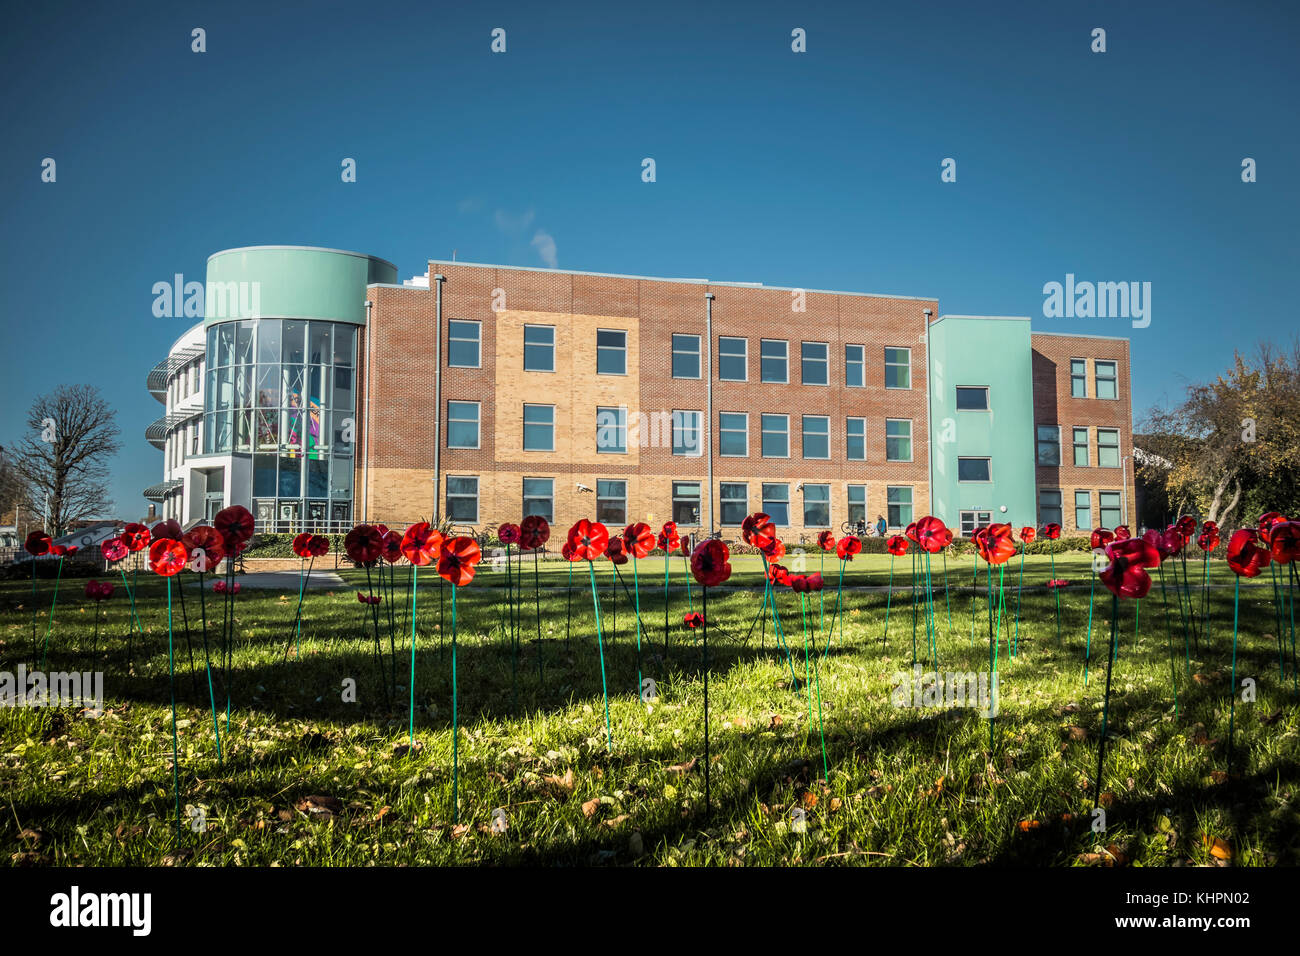 Acton High School - a co-educational secondary school in the Acton area of the London Borough of Ealing, UK. - Stock Image